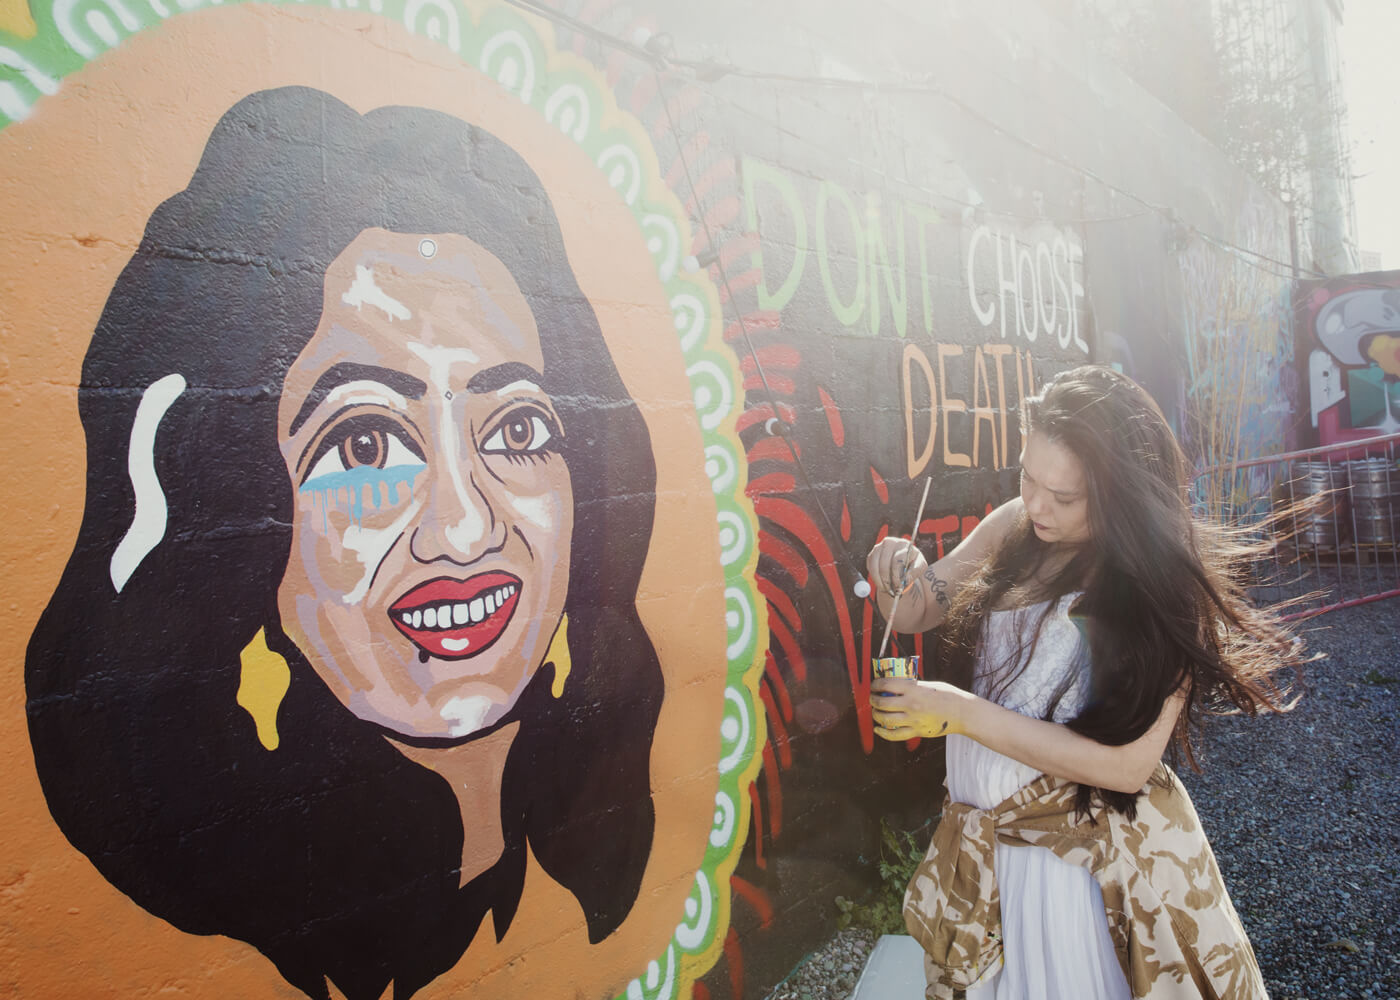 Savita Halappanavar, Dublin.  Savita Halappanavar's image became iconic. She died after doctors refused her an abortion in 2012. She contracted sepsis after miscarrying her daughter. Her death shocked Ireland and brought new awareness and energy to the campaign to repeal anti abortion laws.